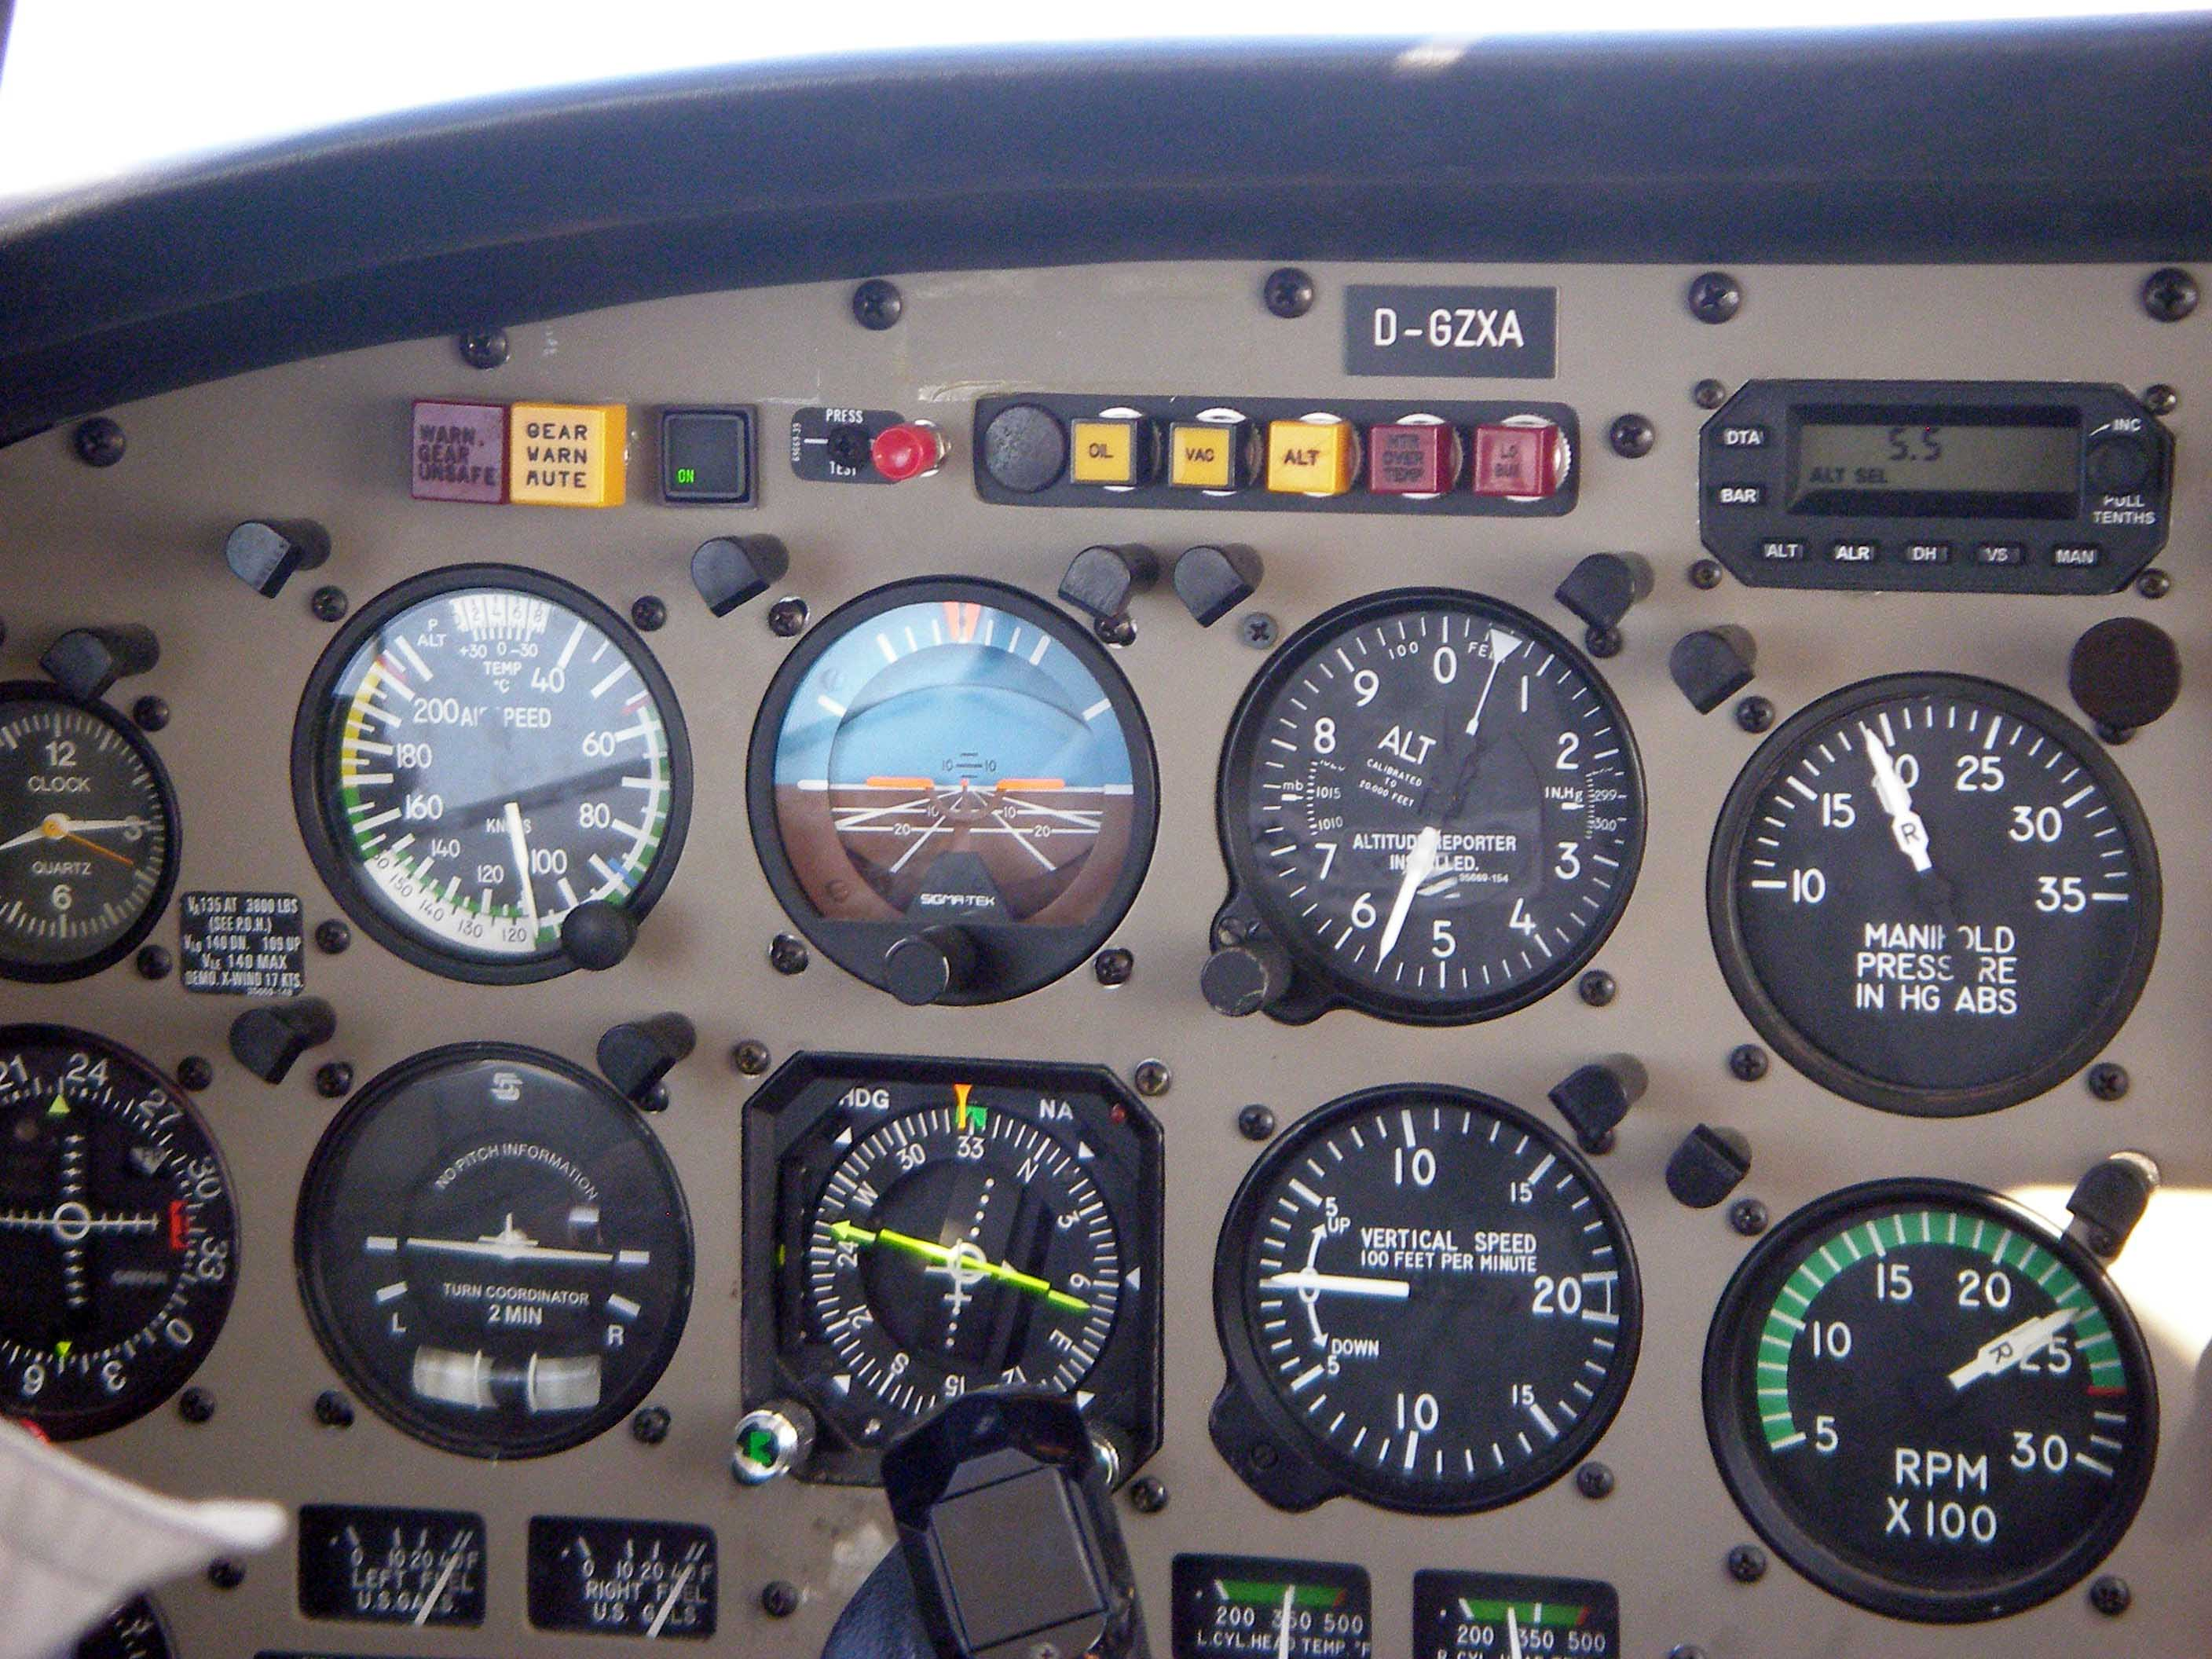 PA44 instruments how i became a pilot